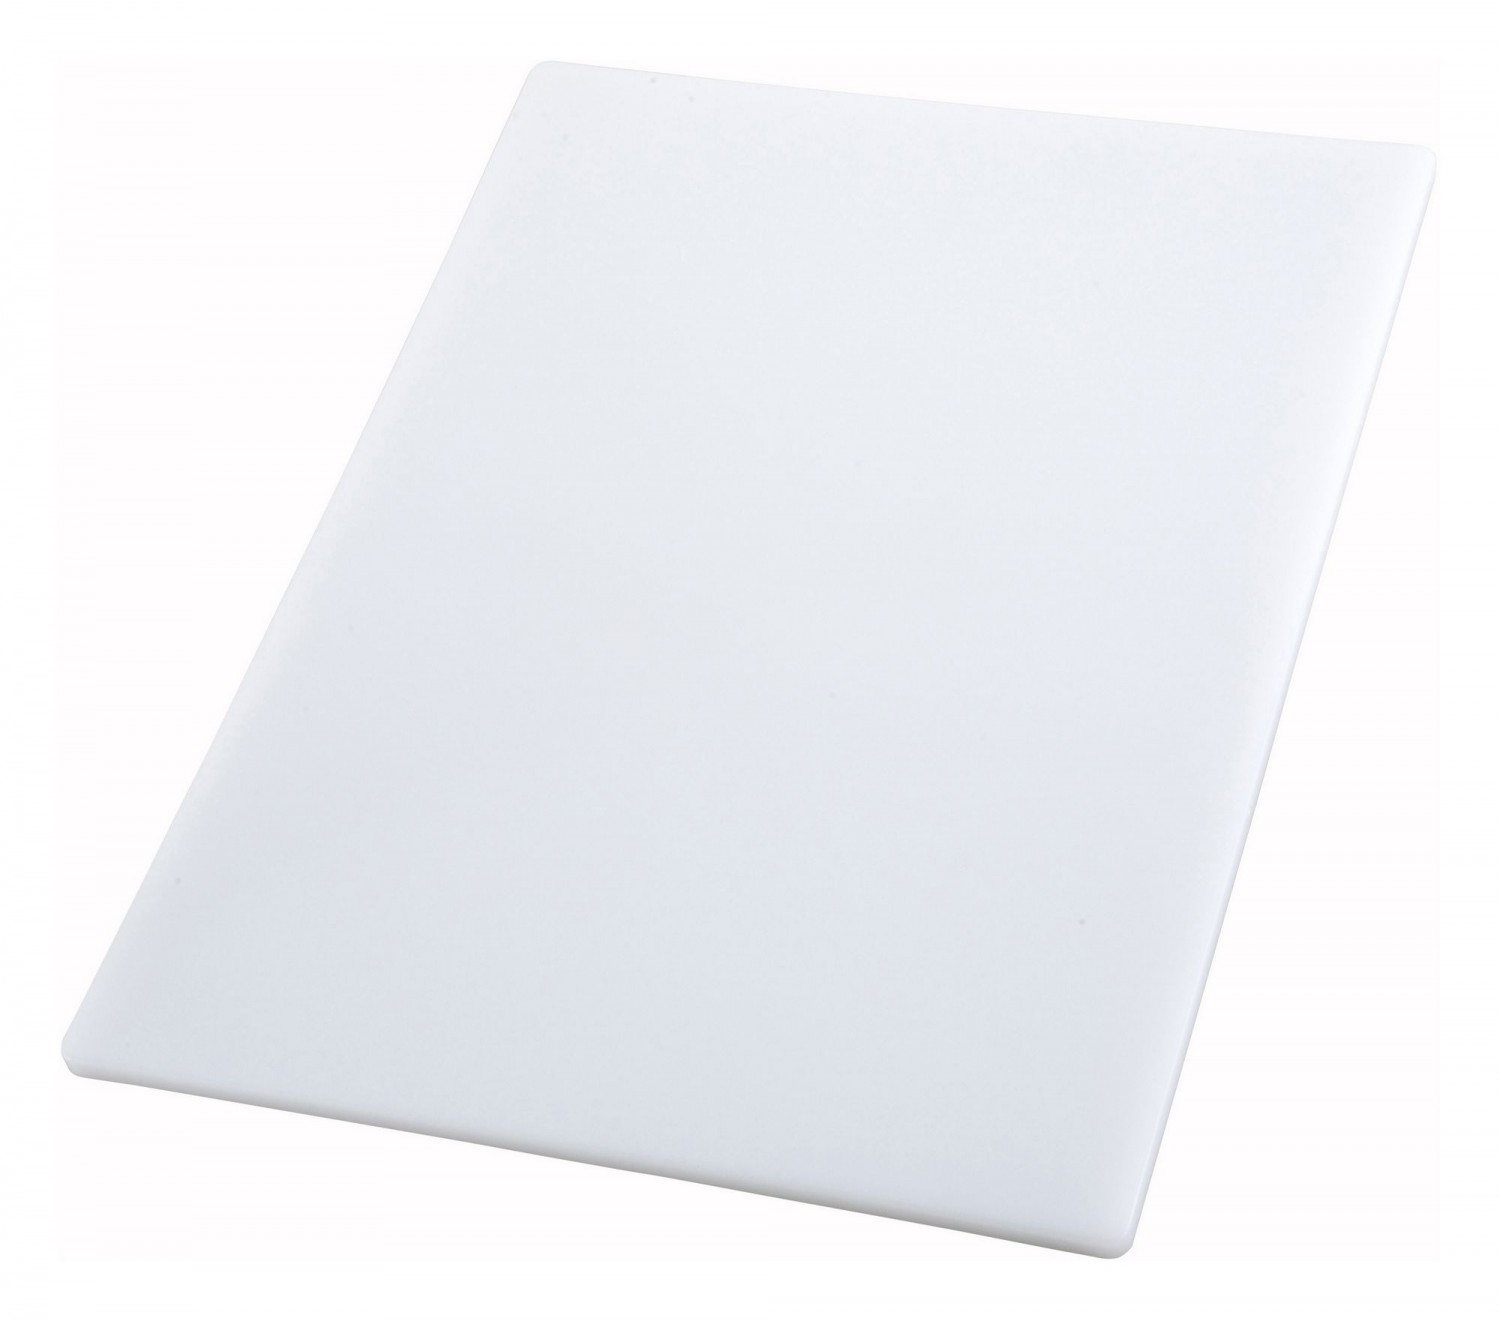 "Winco CBWT-1830 White Plastic Cutting Board 18"" x 30"" x 1/2"""